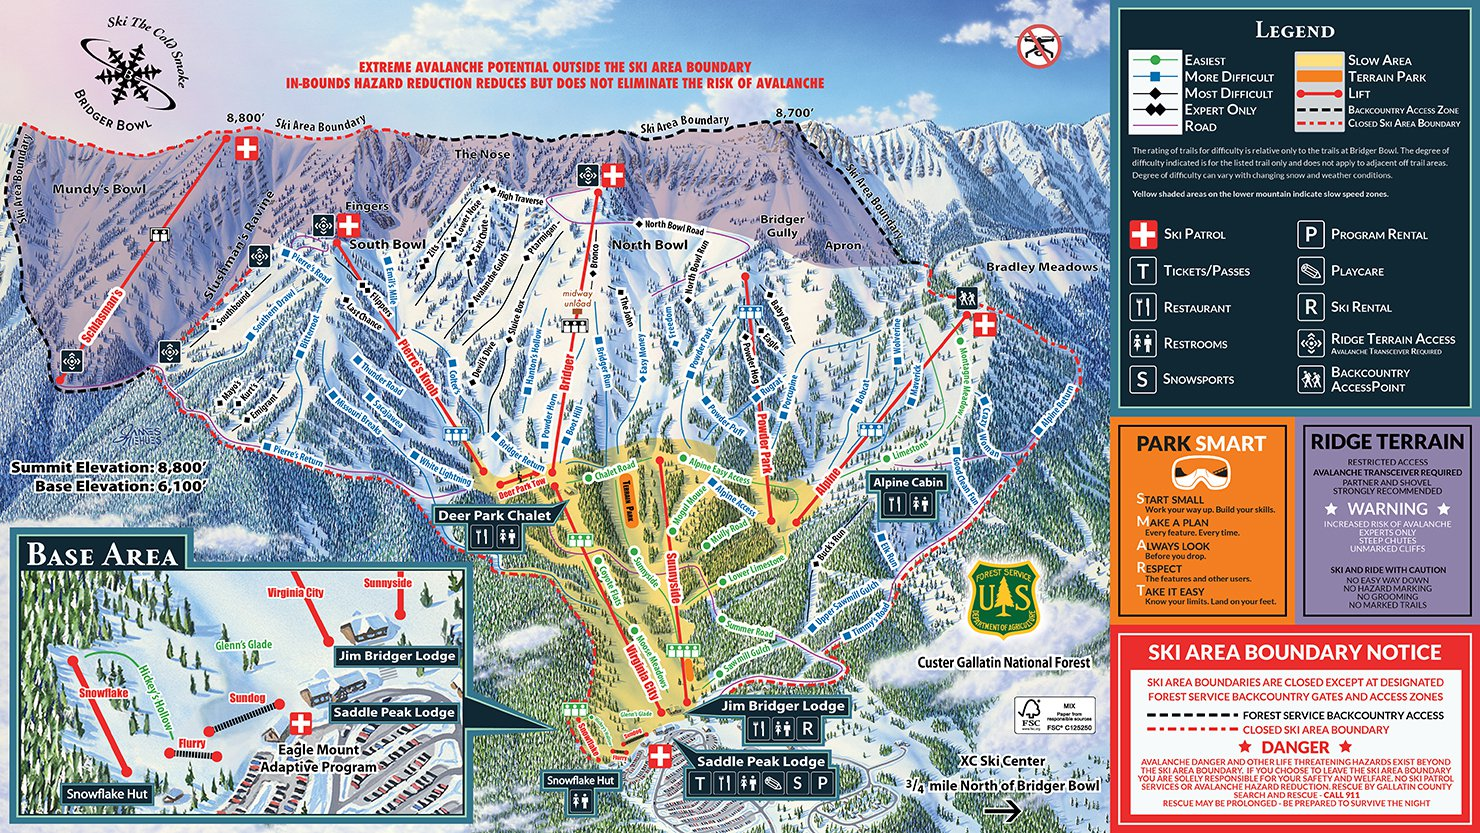 Click to enlarge trail map. Courtesy of www.bridgerbowl.com.